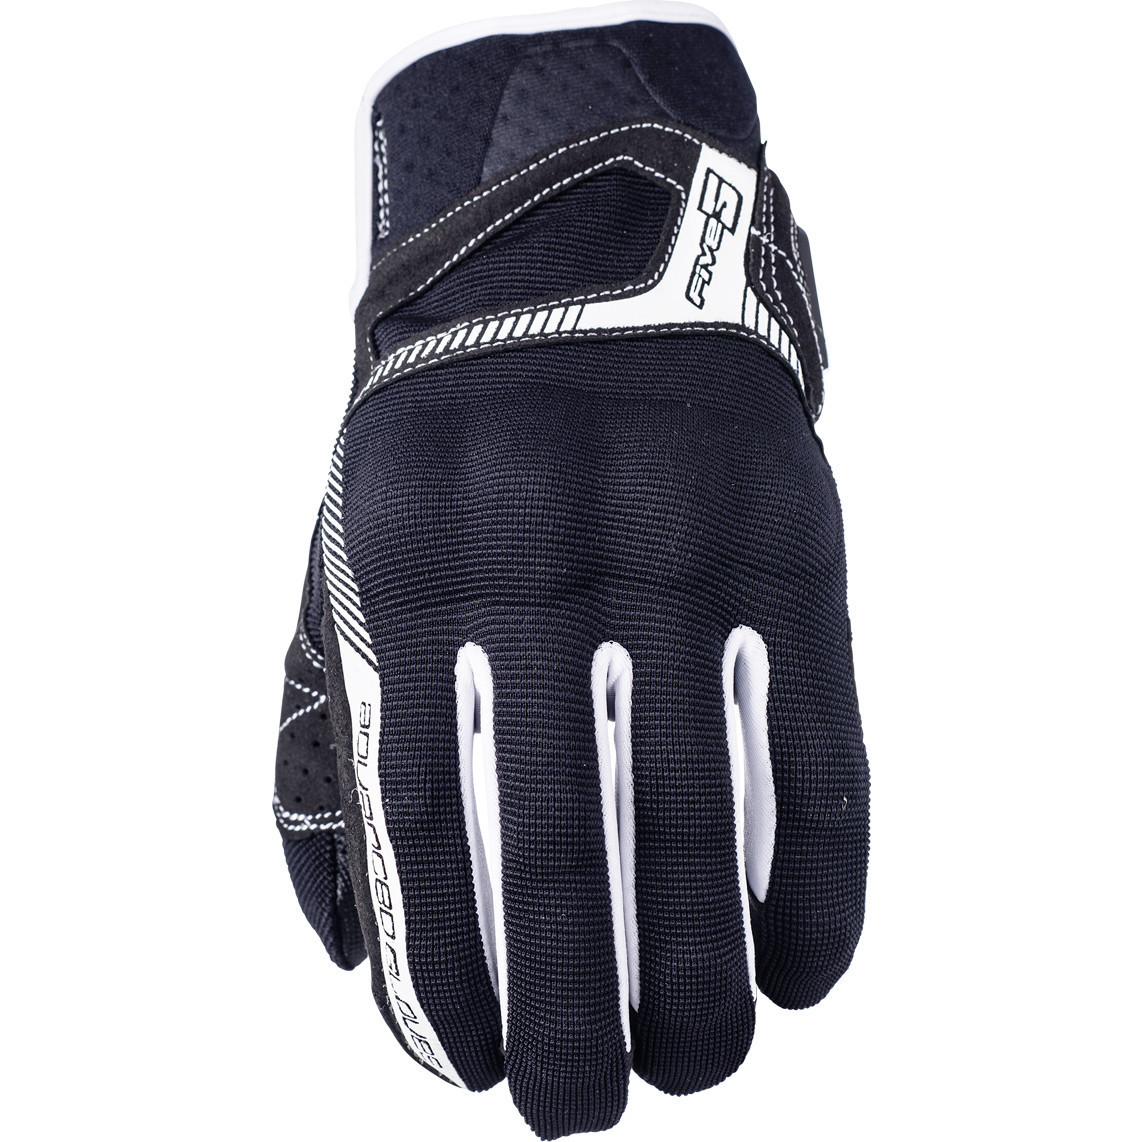 Five-RS3-Motorcycle-Gloves-Motorbike-Bike-Armour-Urban-Touch-Screen-GhostBikes thumbnail 7